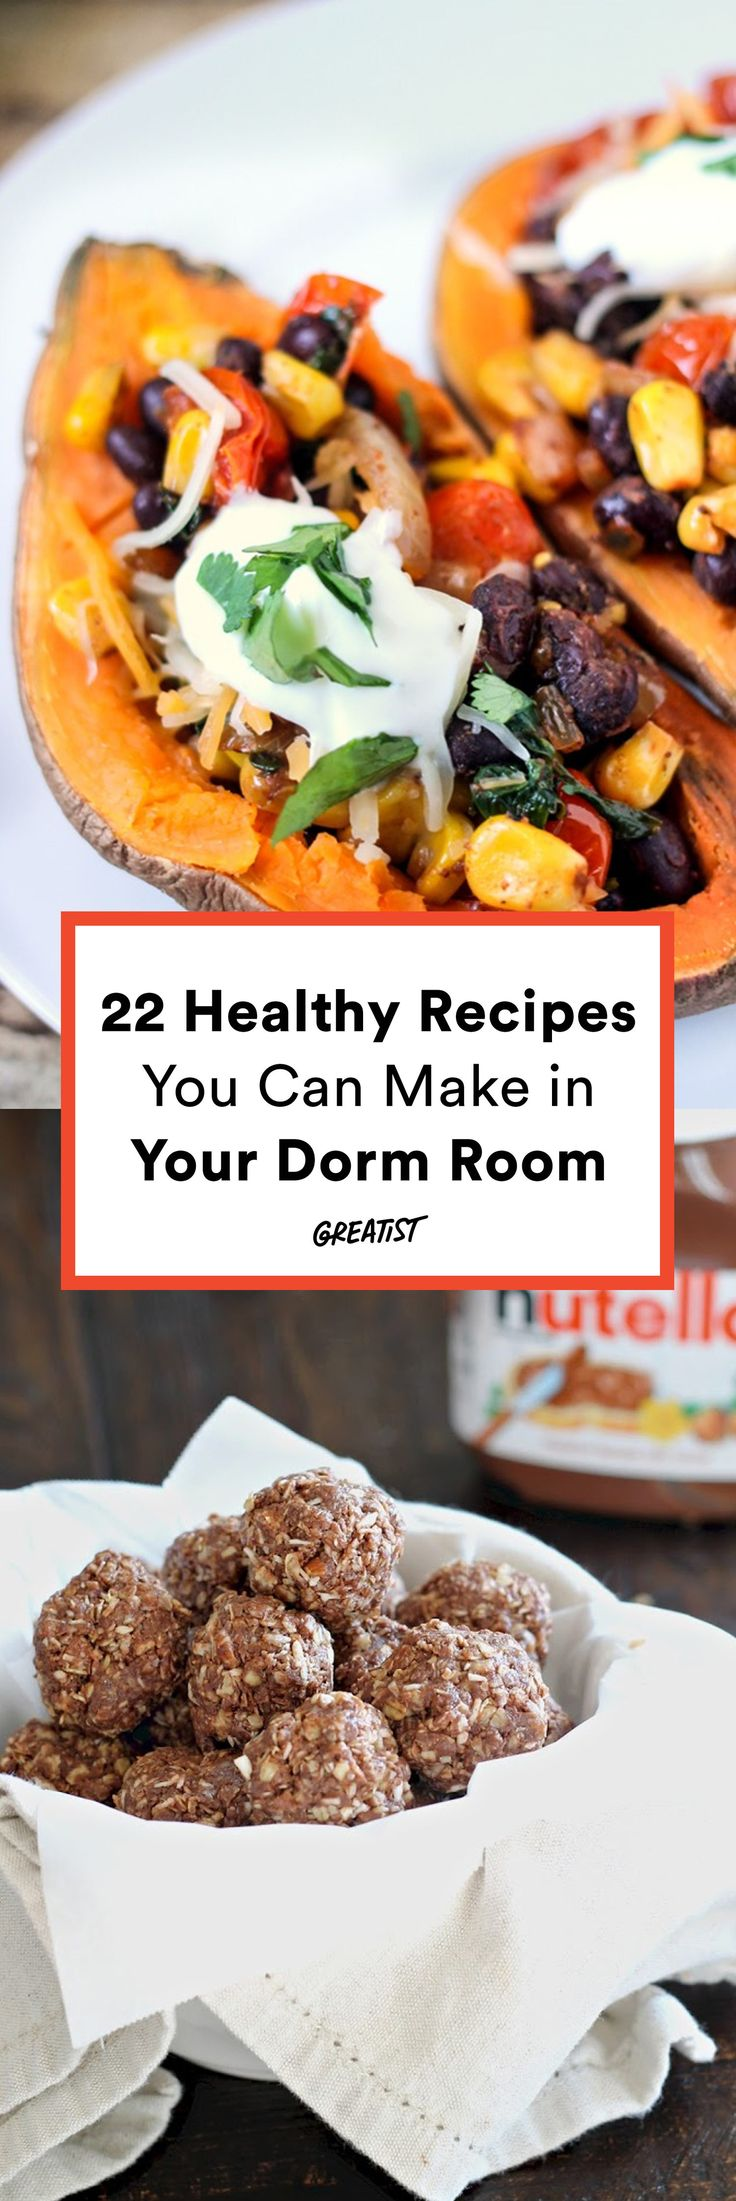 Superb 22 Healthy College Recipes You Can Make In Your Dorm Room Part 20